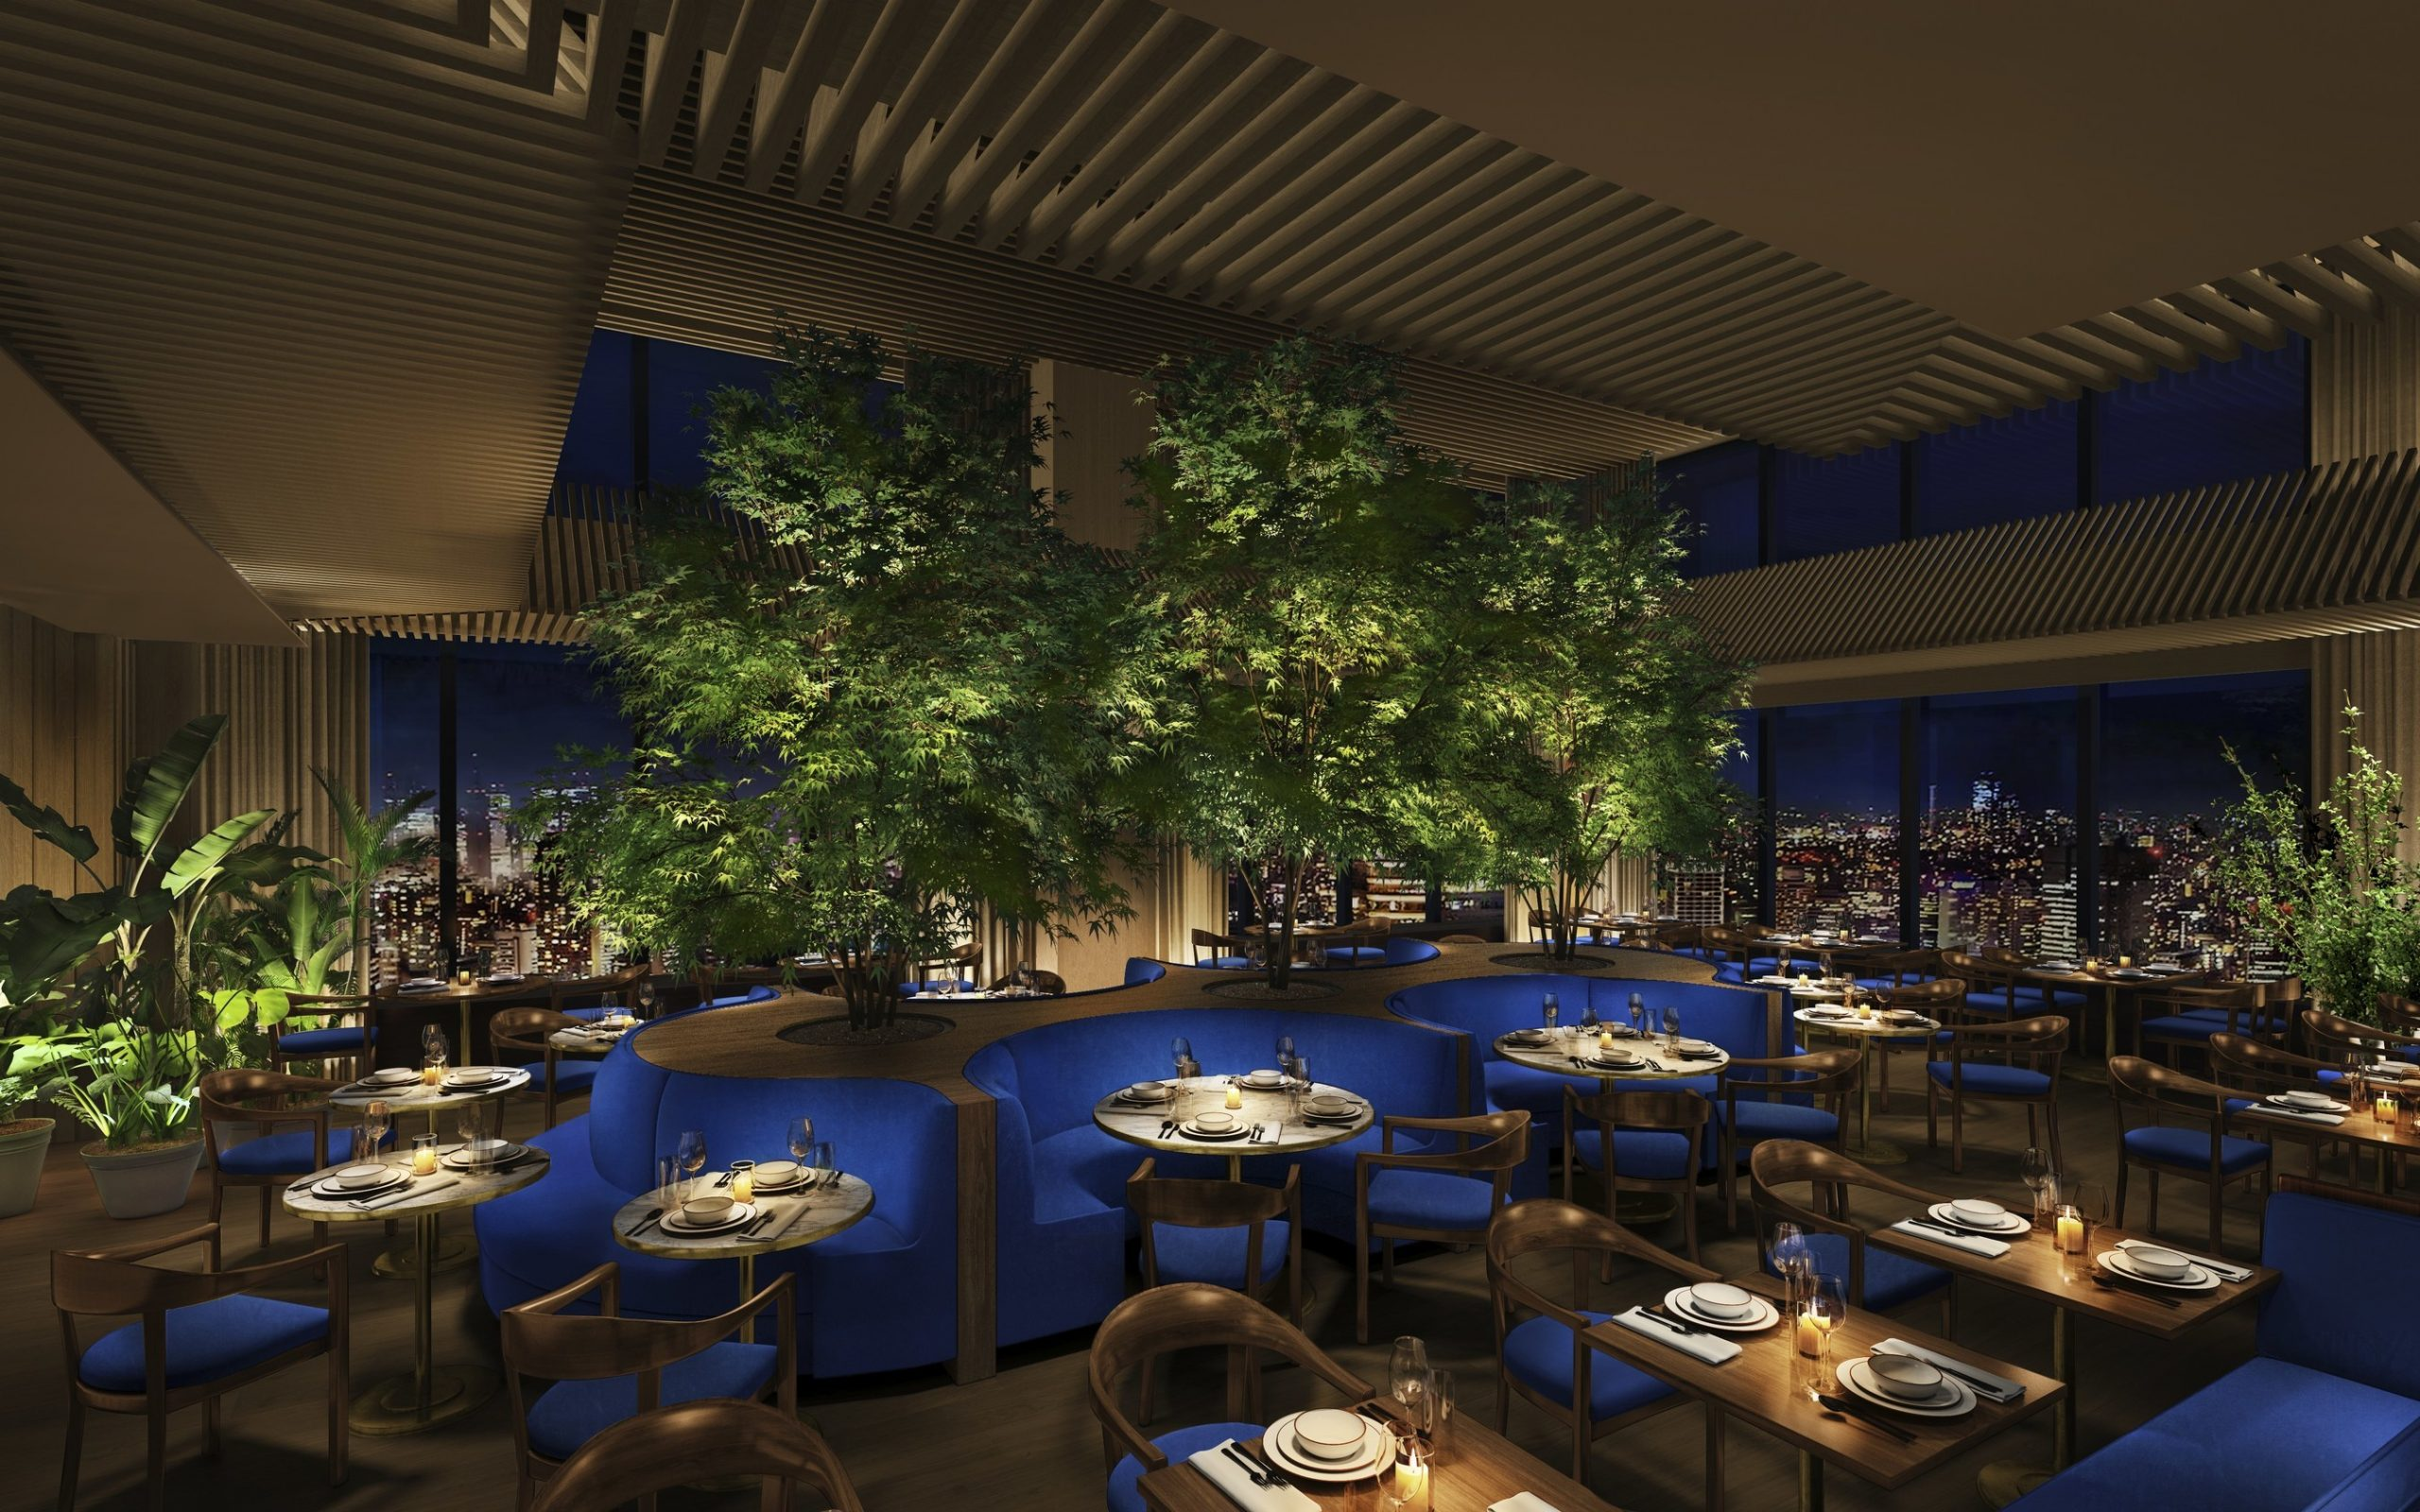 EDITION, The Fast-Growing Luxury Lifestyle Brand, Opens The First Of Two Highly Anticipated Locations In Tokyo